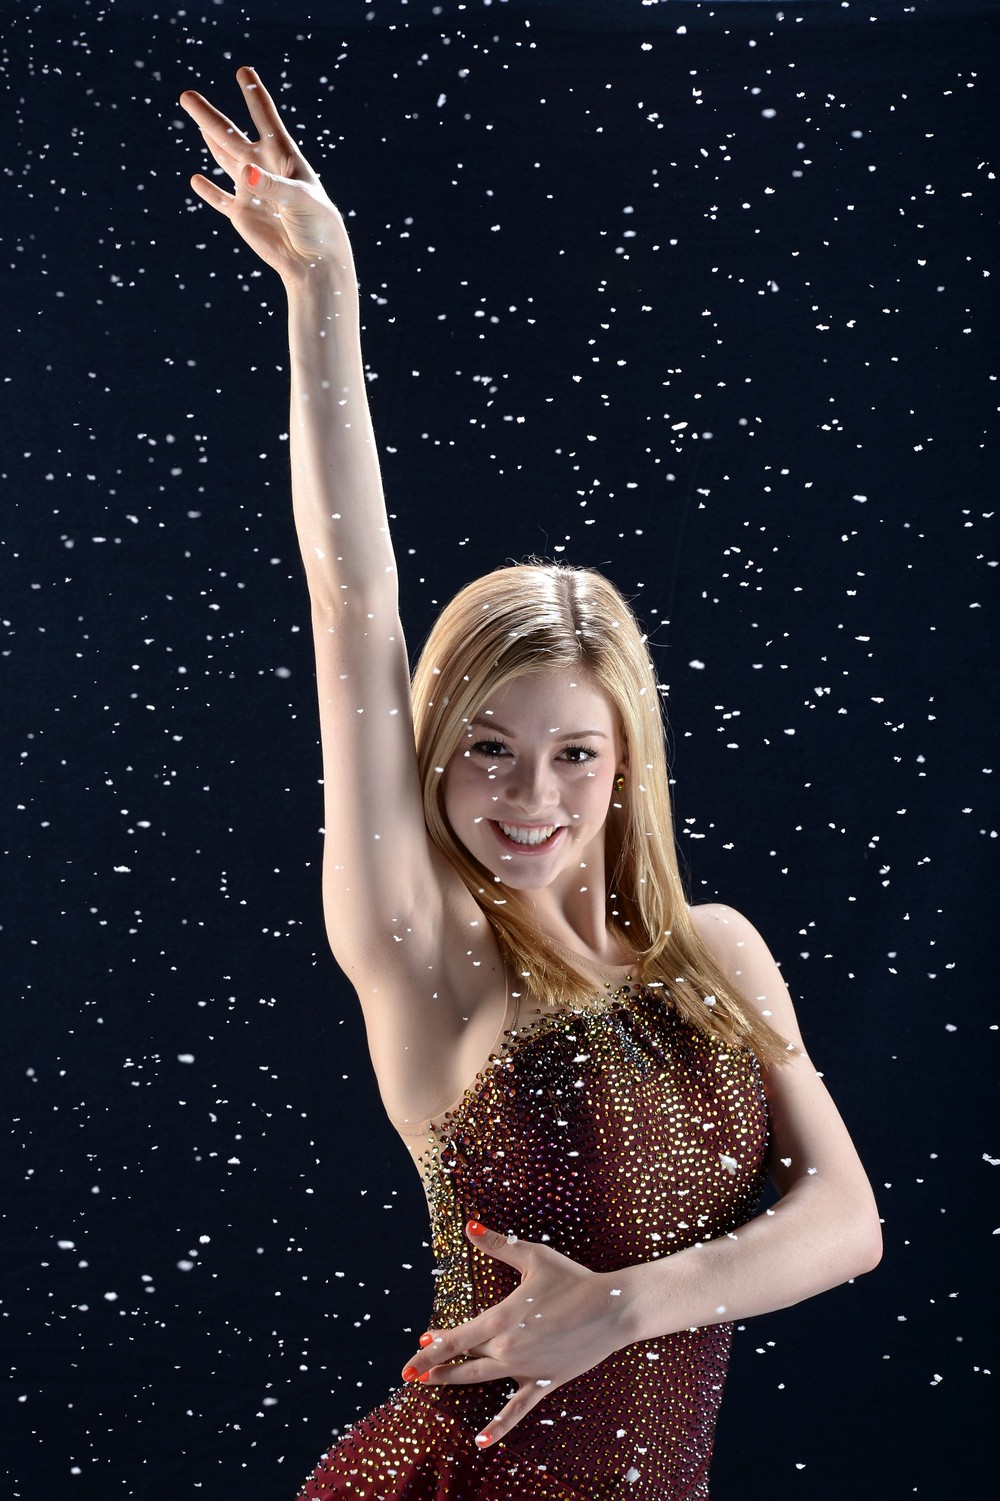 Gracie-Gold-Photos:-Olympic-2014-Media-S